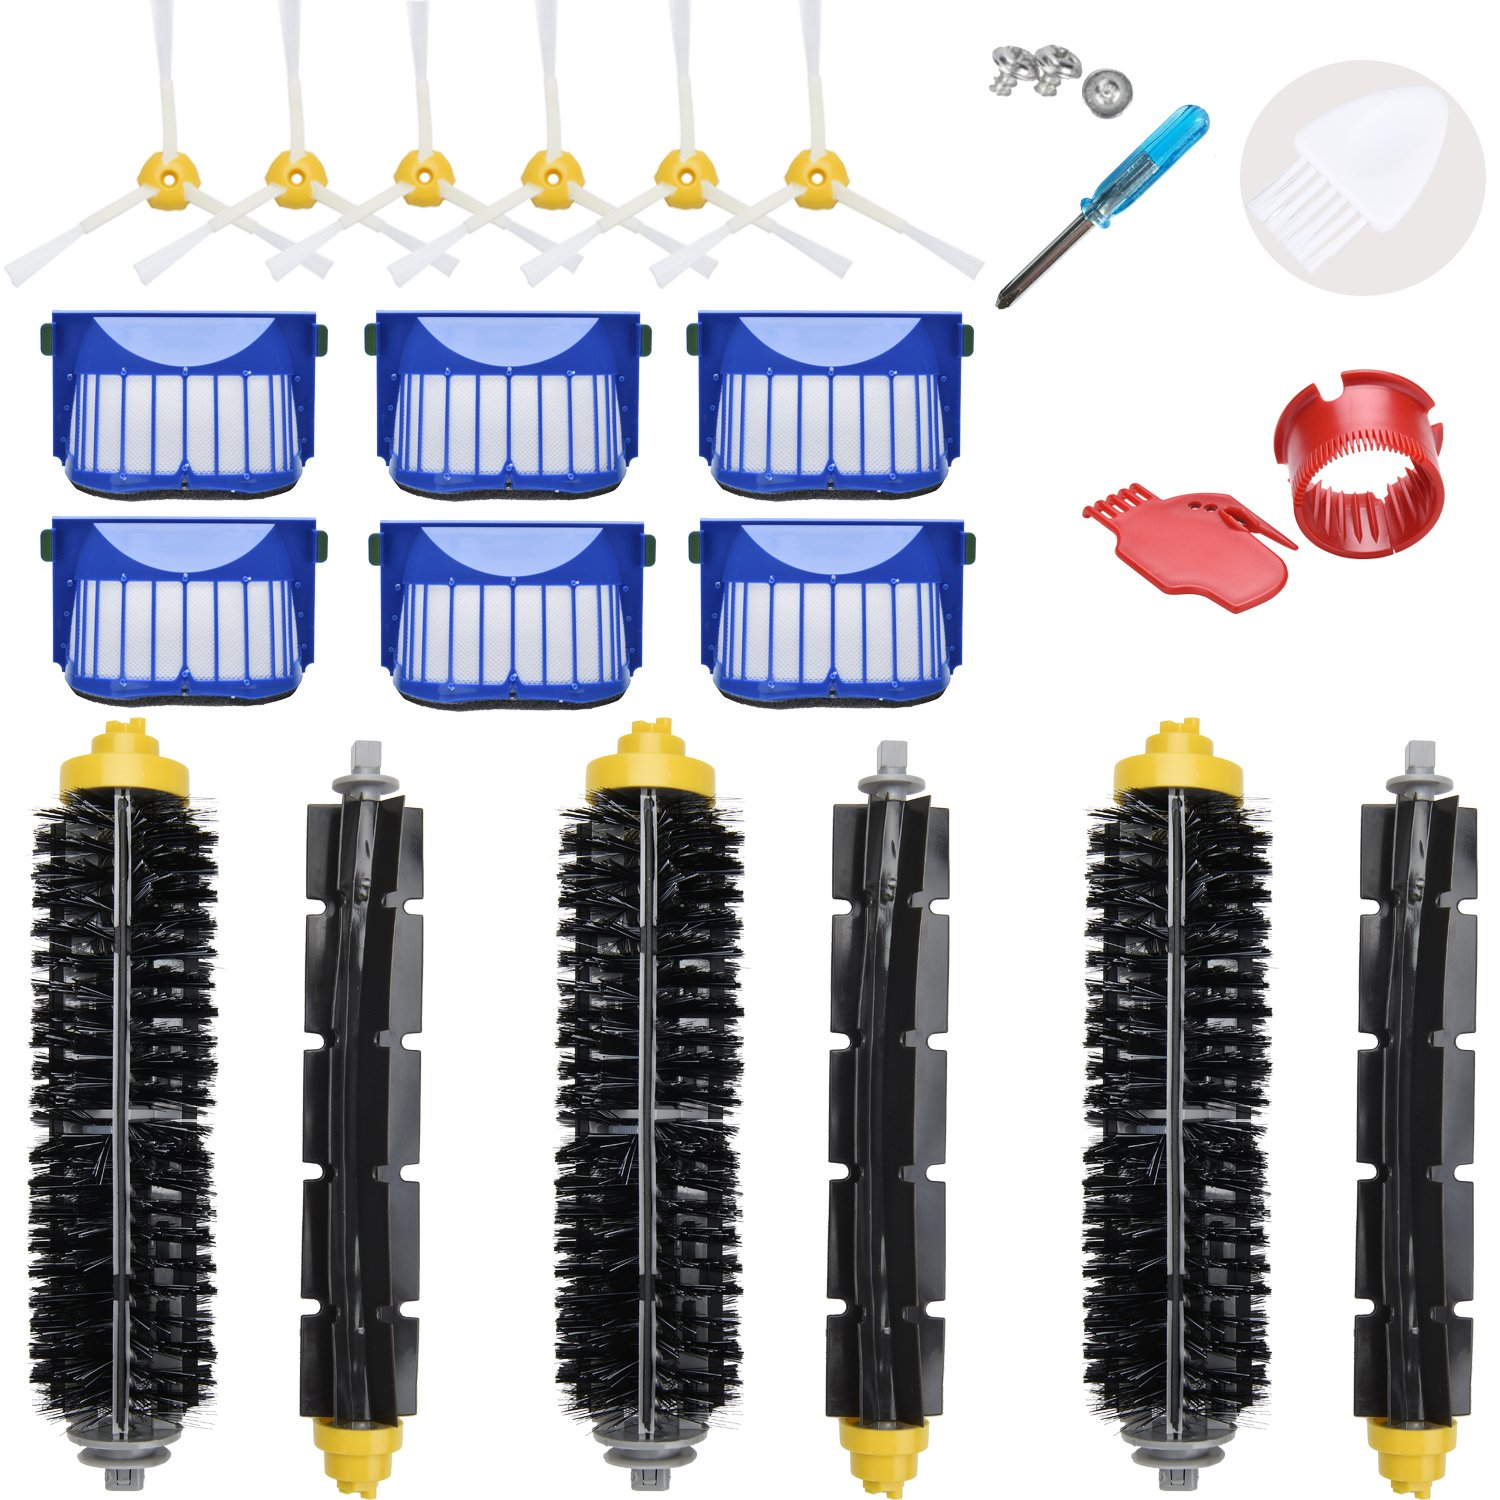 Loveco Replacement Accessories Kit for iRobot Roomba 600 Series 690 680 660 655 651 650 & 500 Series 595 585 564 552 Vacuum Cleaner,6 Filter,6 Side Brush,3 Pairs Bristle and Flexible Beater Brush